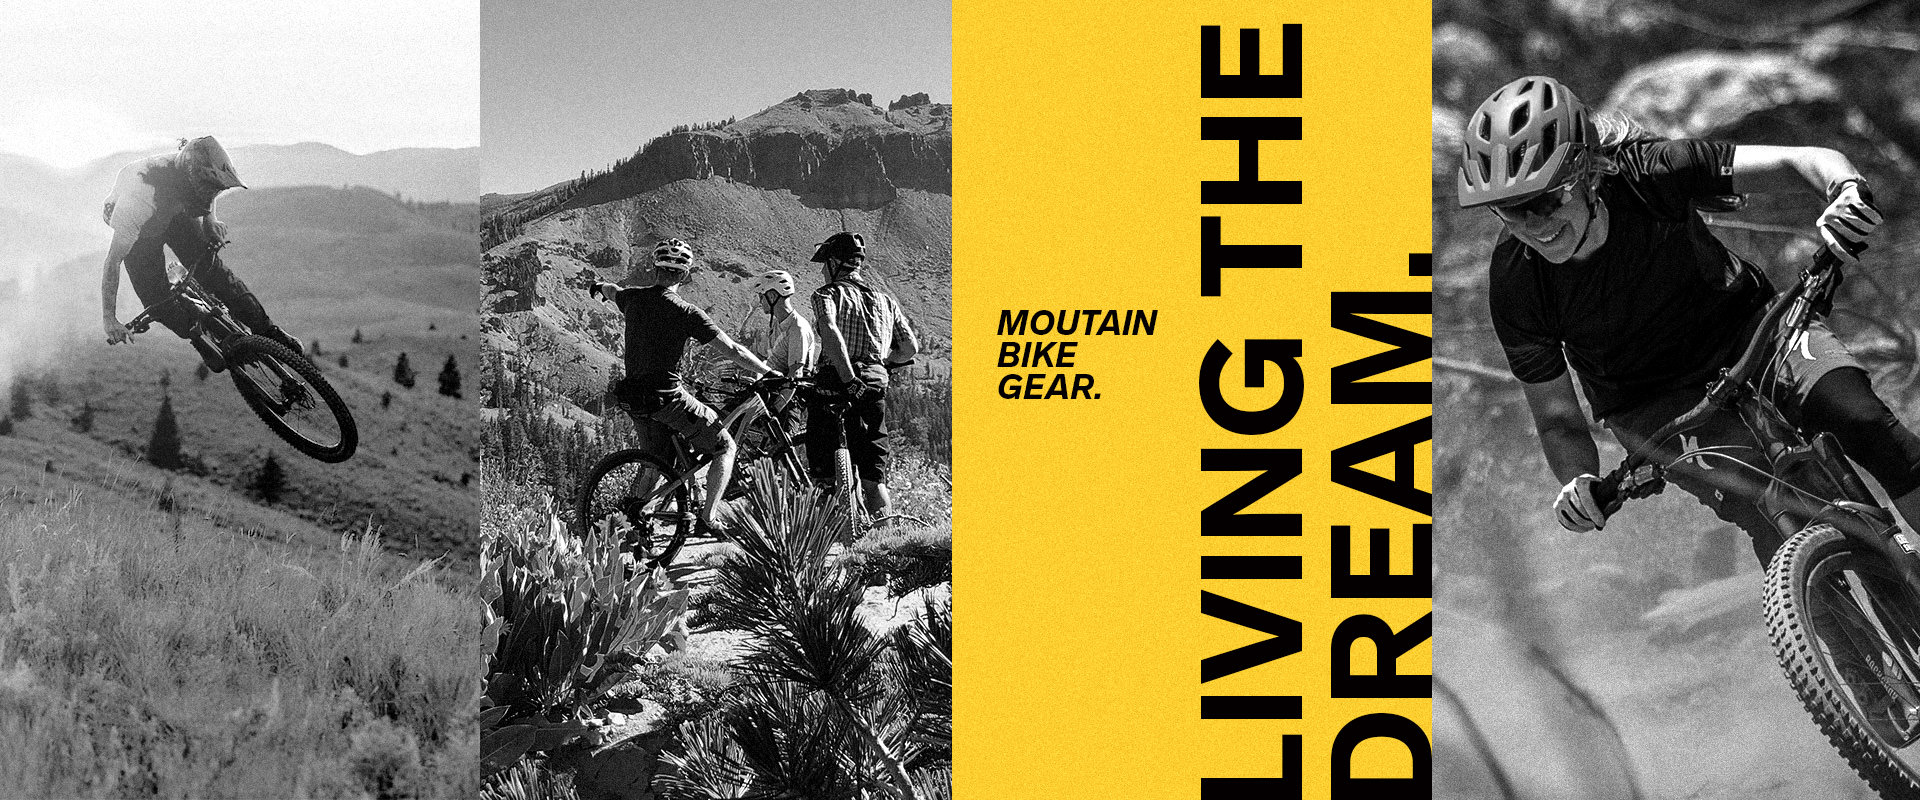 Pacos Mountain Bike Gear